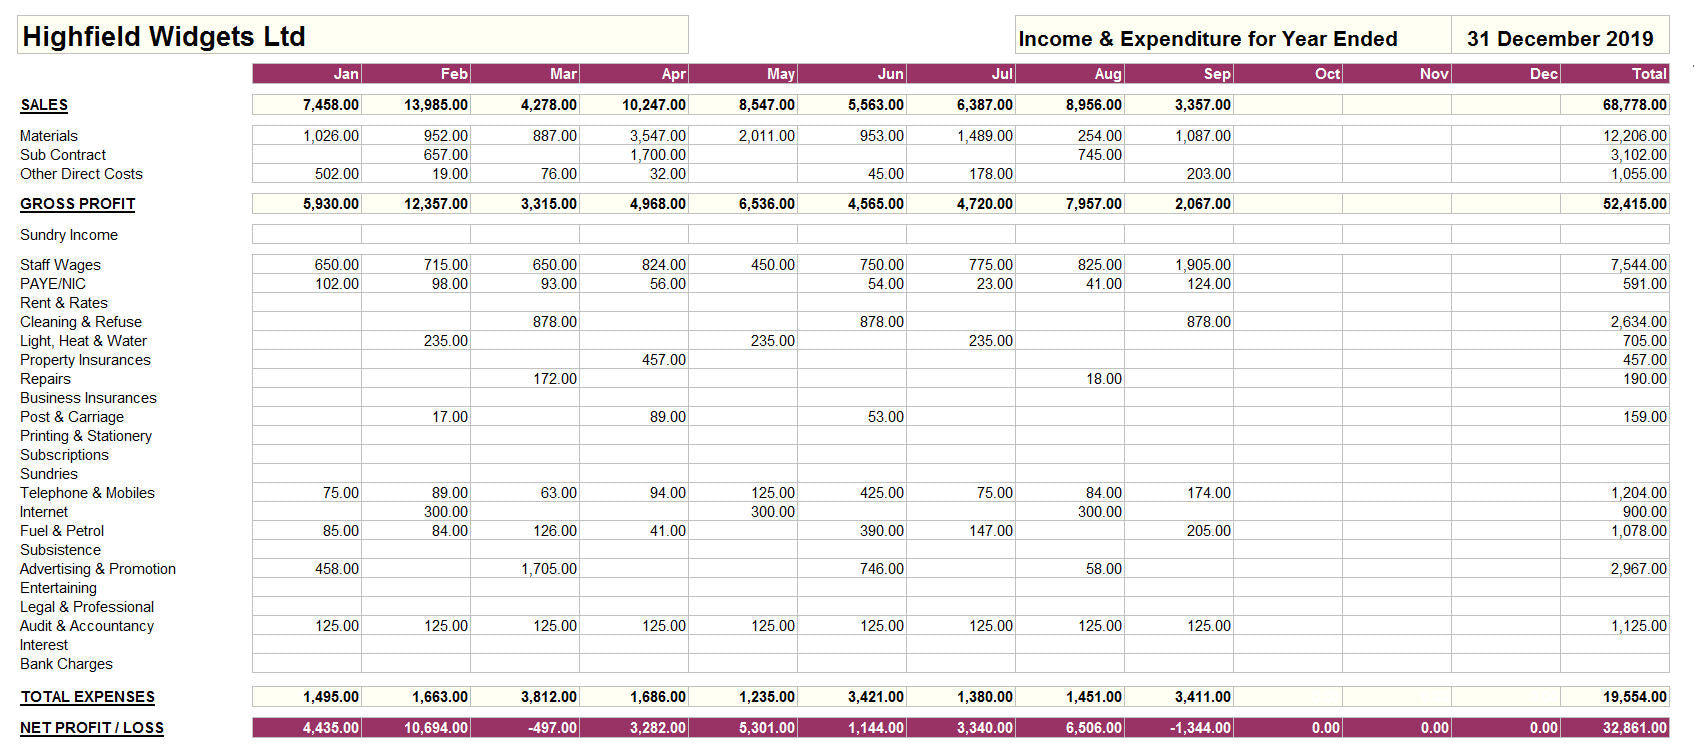 Bookkeeping Spreadsheet for Cash Accounting with Income and Expenditure